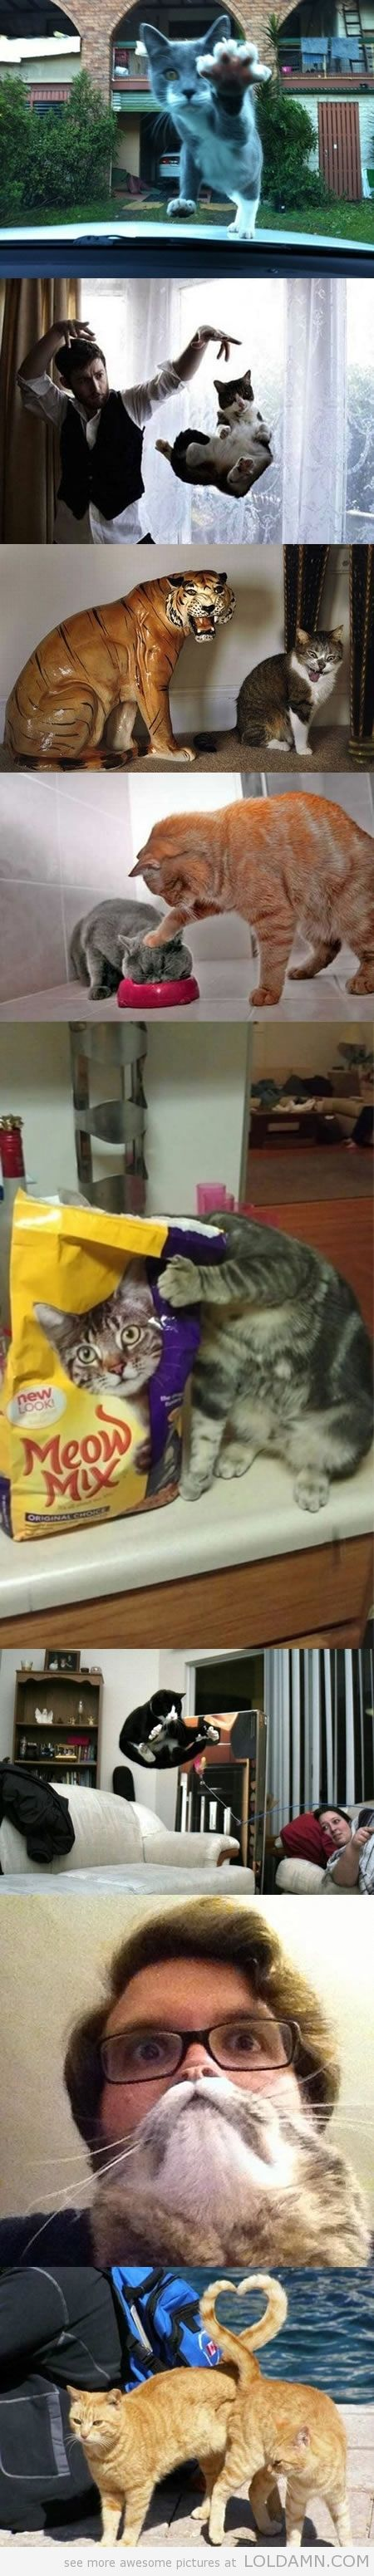 Perfectly Timed Cat Photos, 3rd one down I can't stop laughing